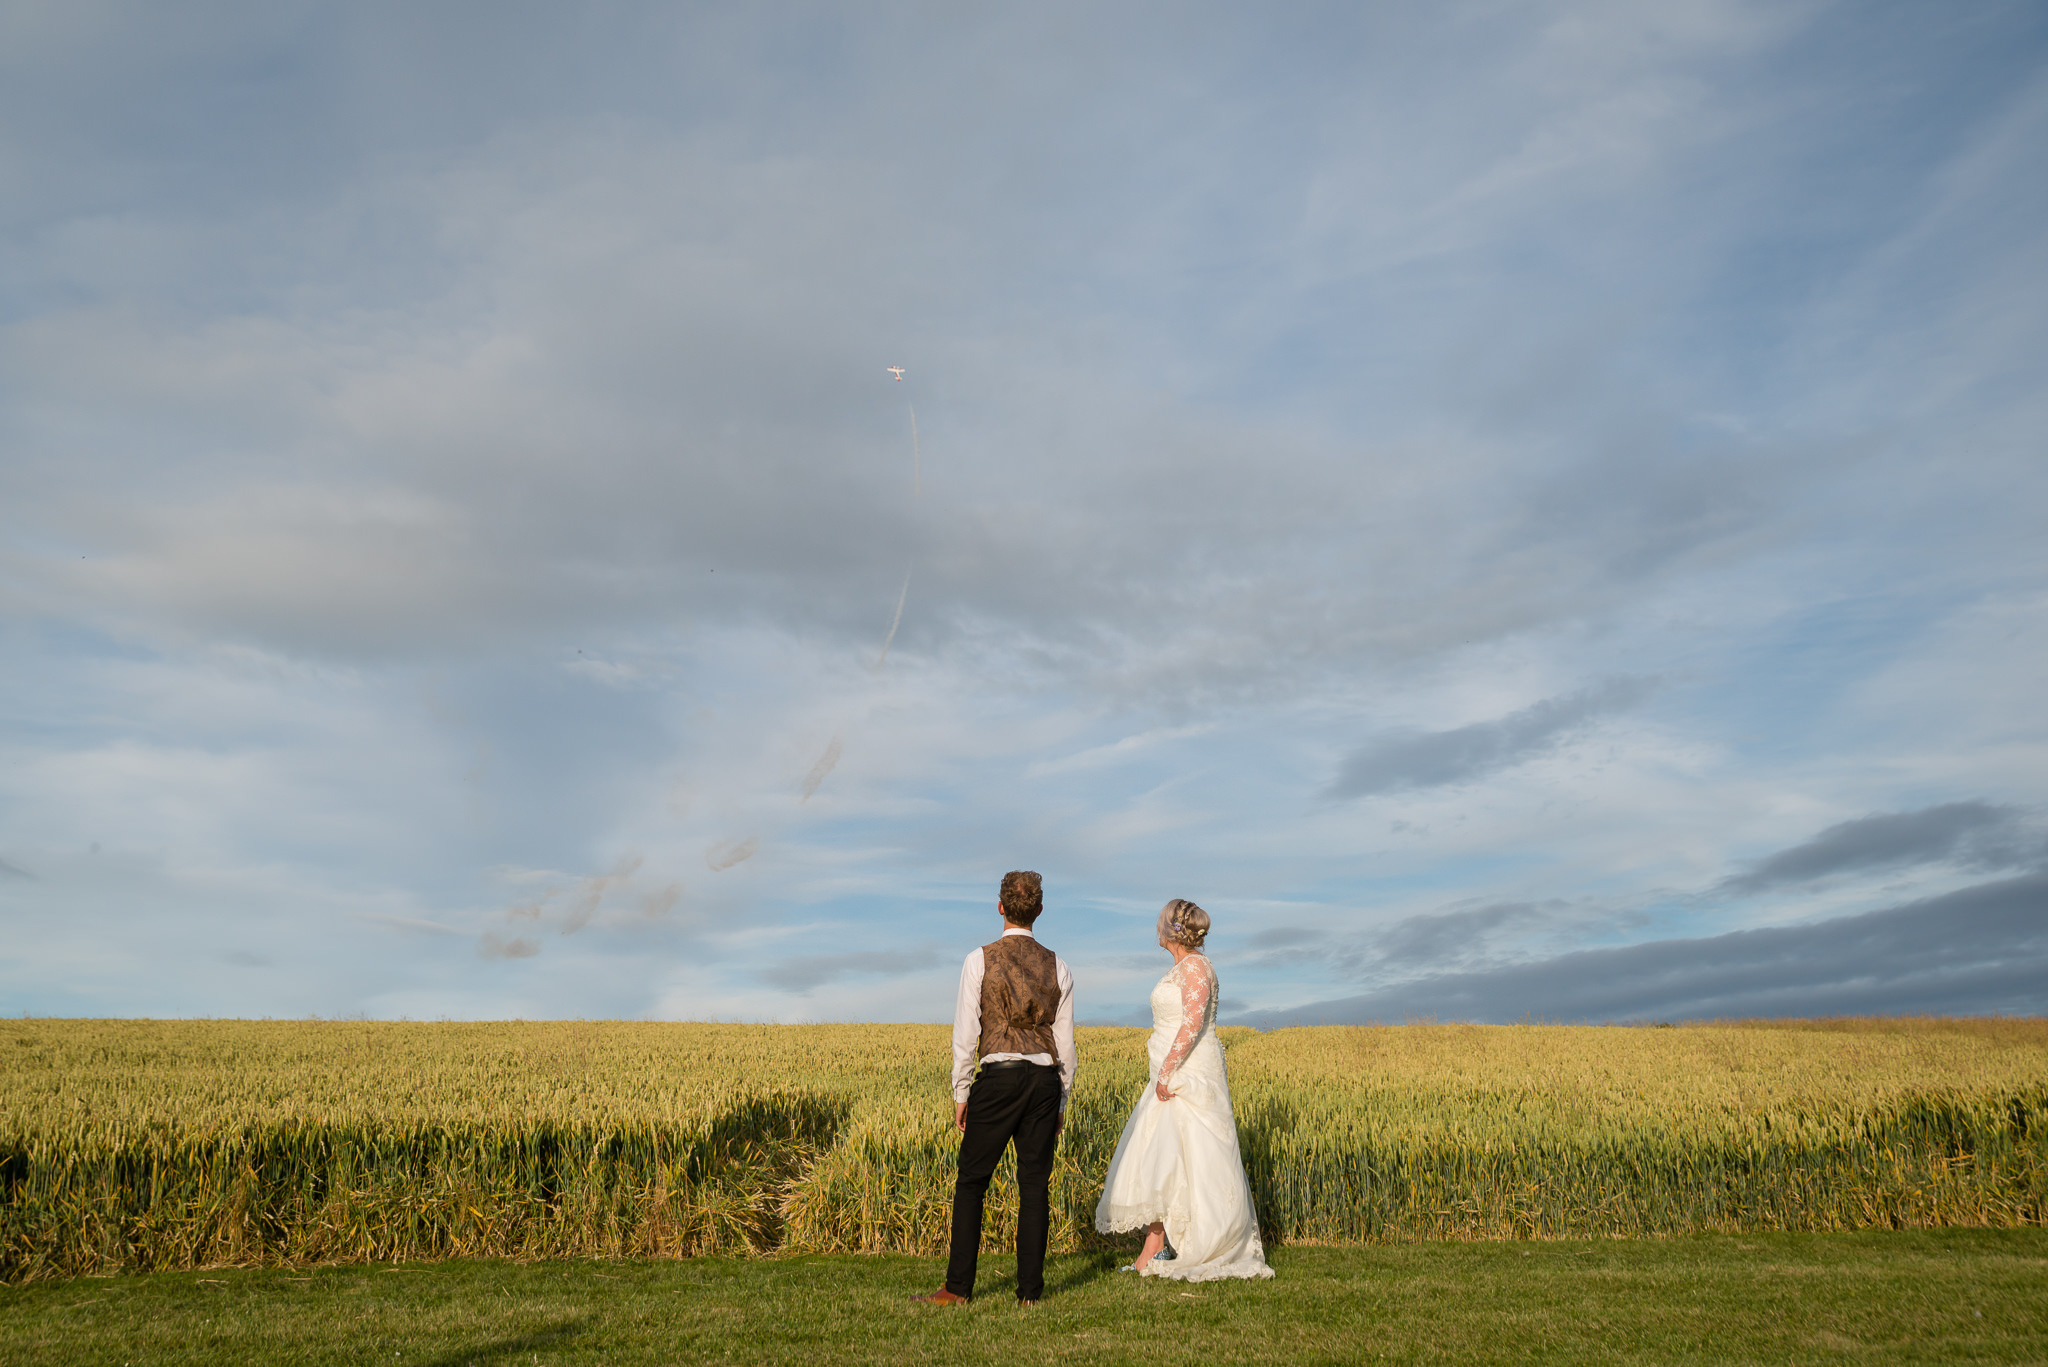 The bride and groom watch as a stunt plane flies in the sky above them